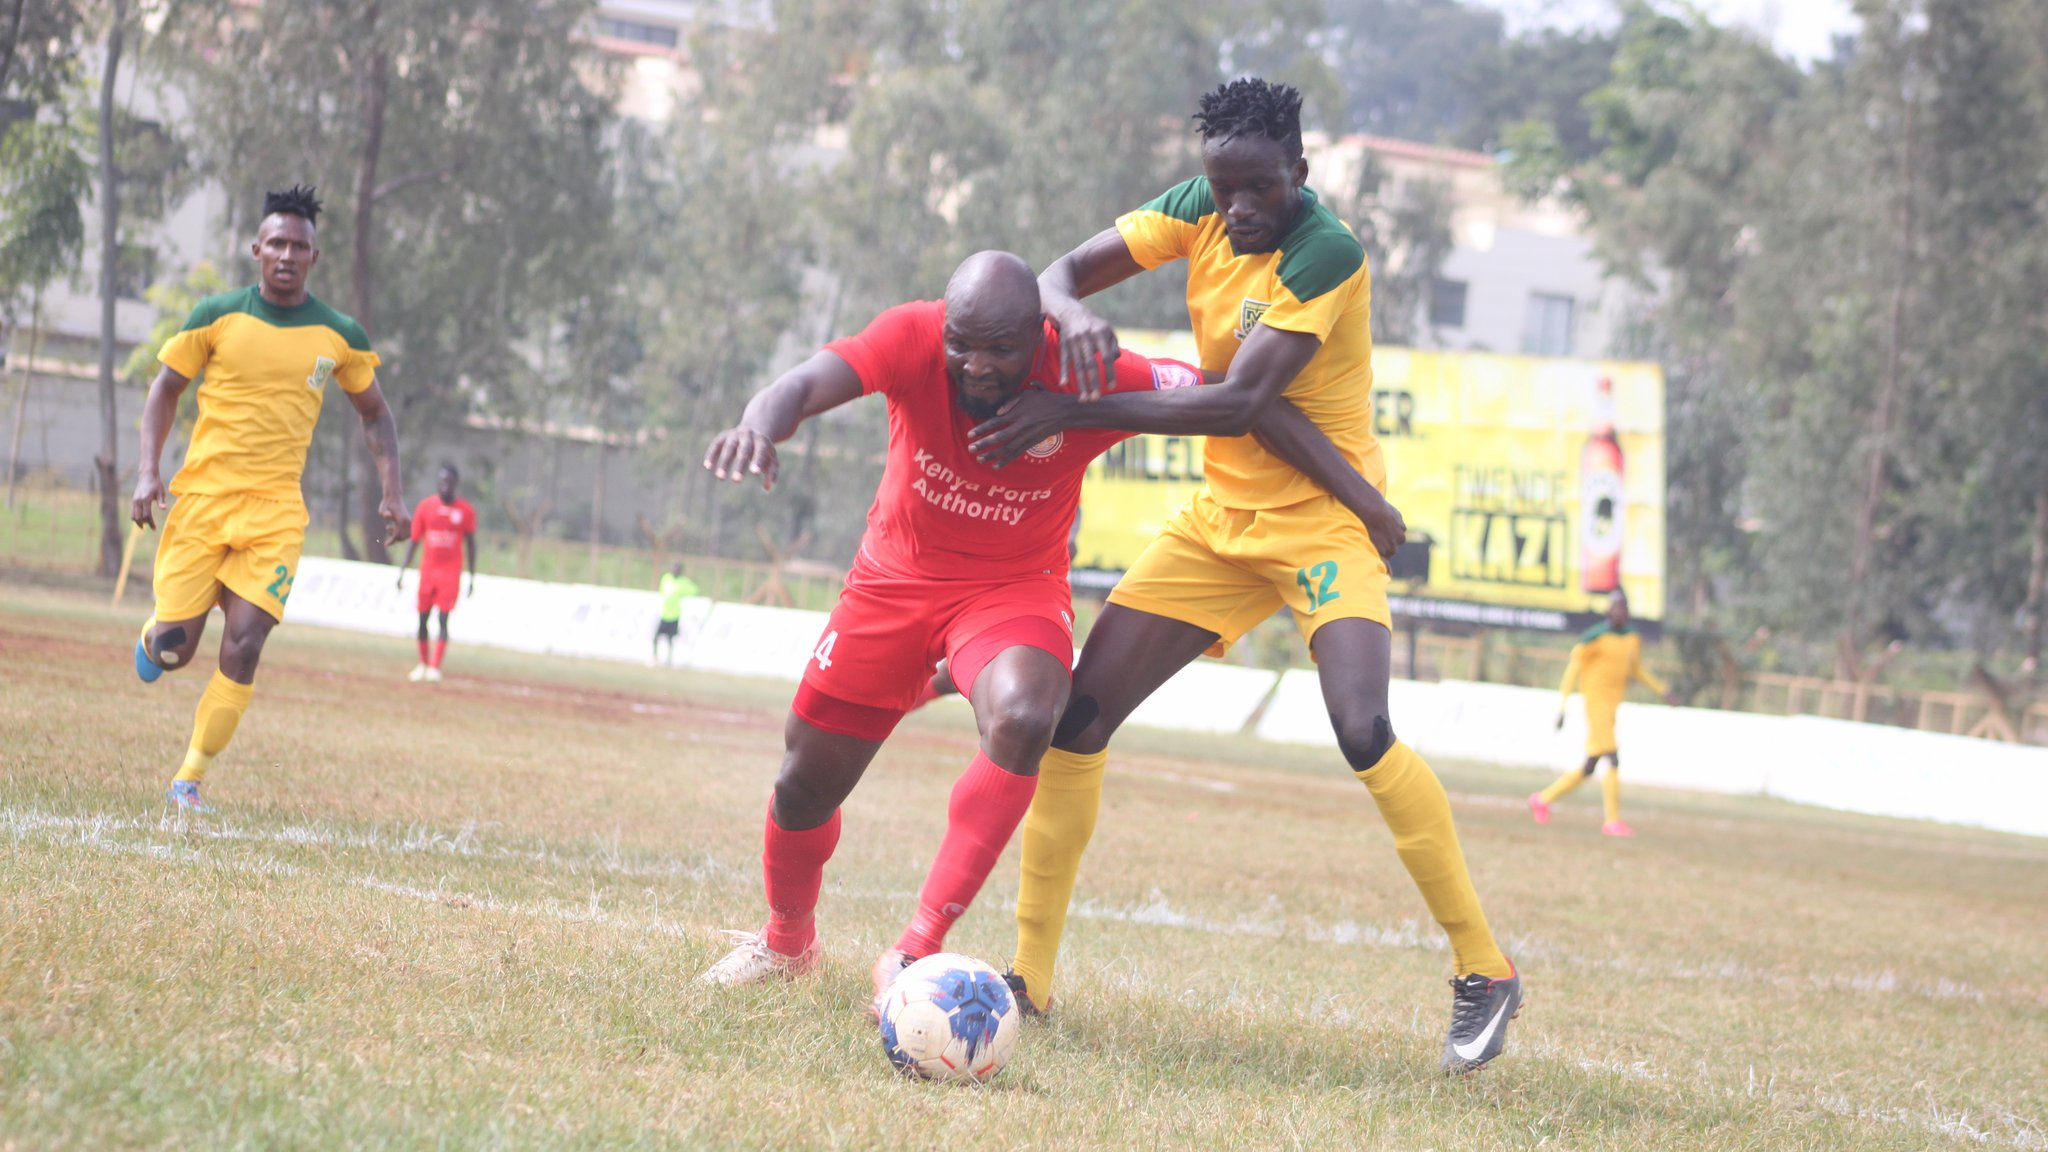 Mathare United players (in yellow) donned jerseys without the OdiBets logo during their league opener on Saturday. They drew 0-0 with Bandari. www.businesstoday.co.ke